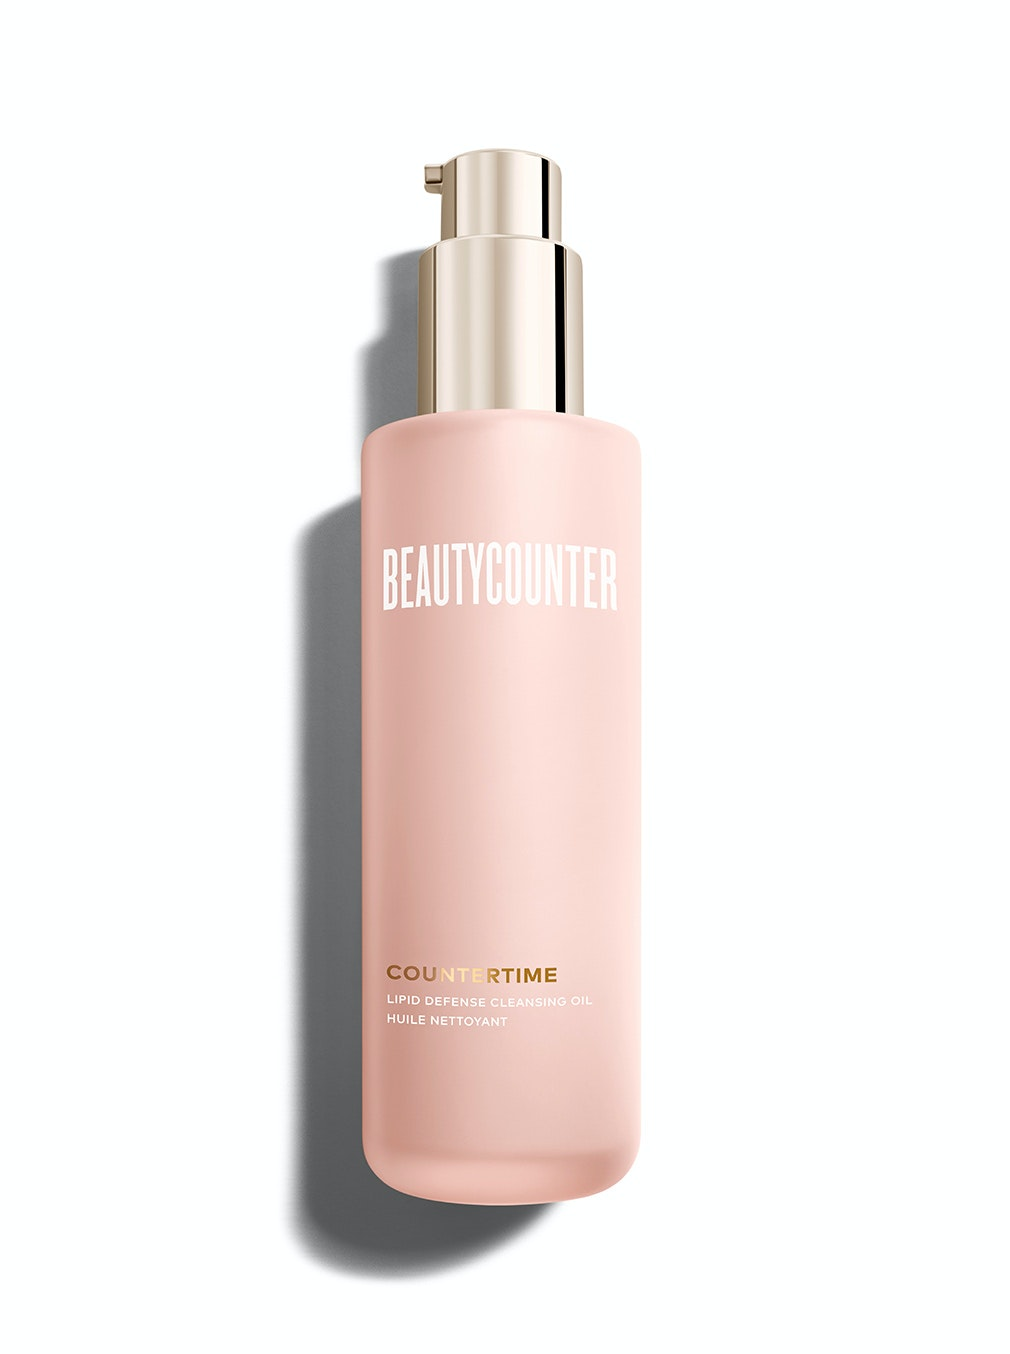 Countertime Lipid Defense Cleansing Oil | Skin Care | Beautycounter